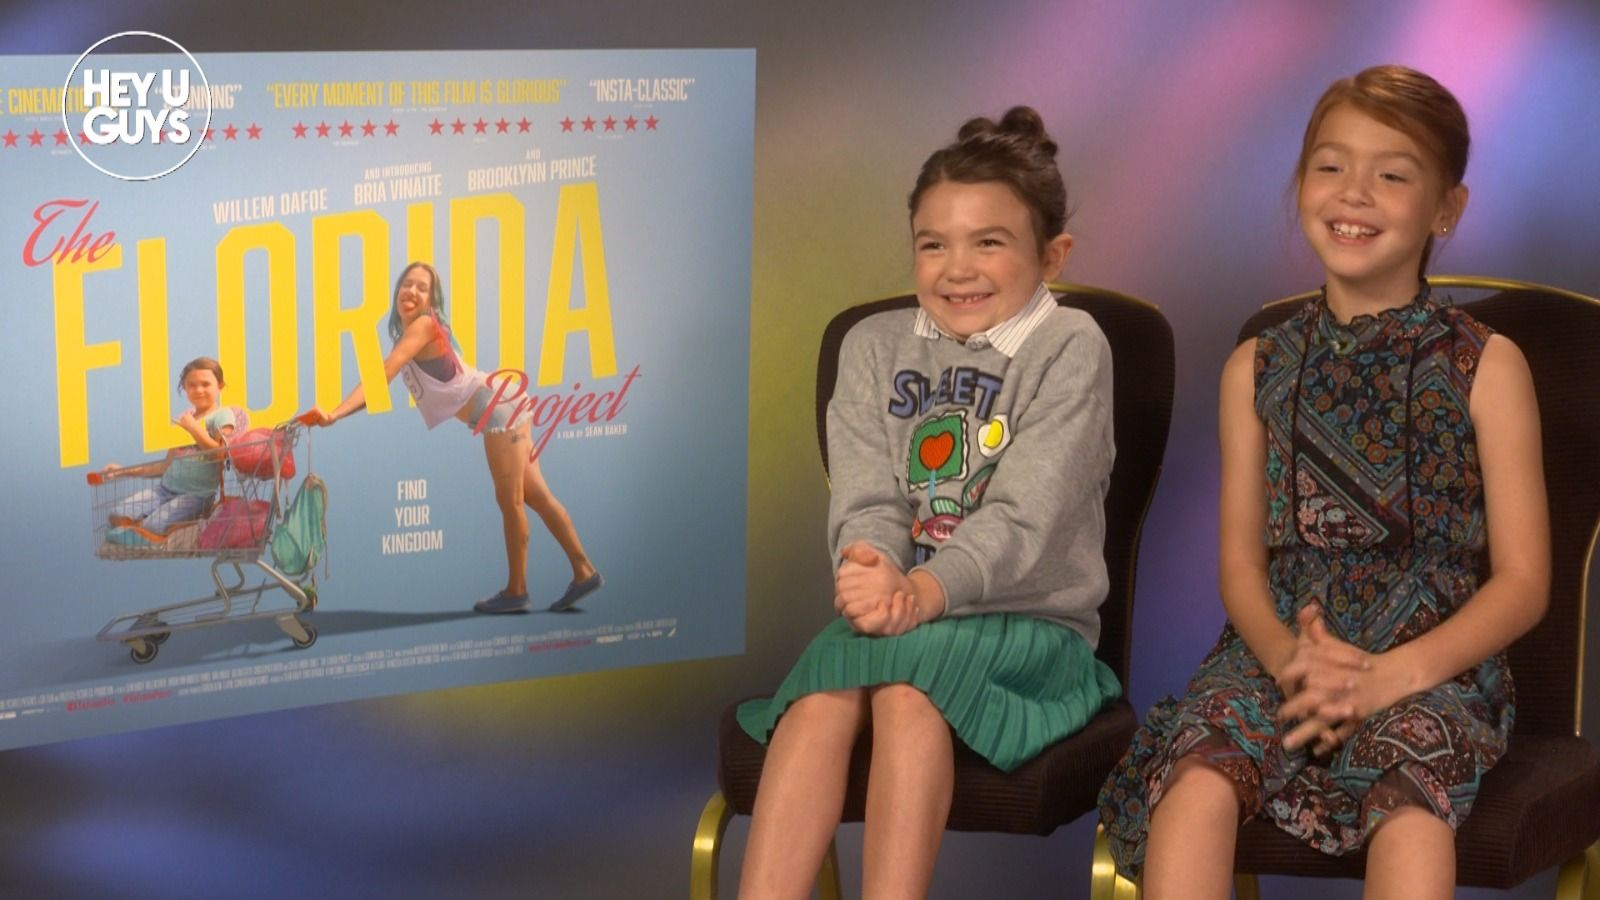 Exclusive: Brooklynn Prince and Valeria Cotto on The Florida Project